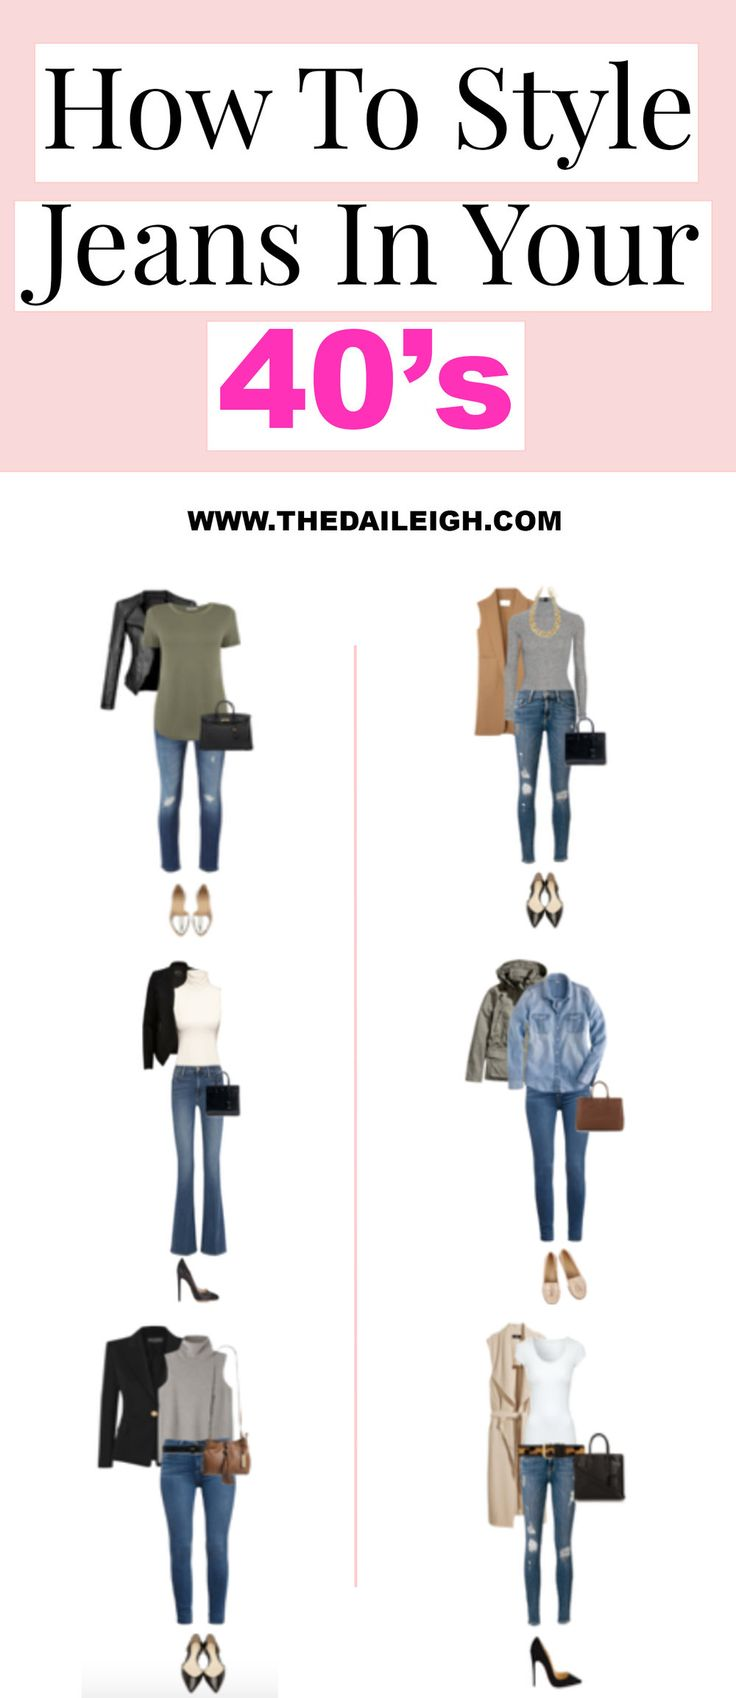 How To Style Jeans | How To Dress In Your 40's | Outfit Ideas For Women Over 40 | Wardrobe Essentials For Women Over 40 | Jeans Outfit | How To Dress Up Jeans | How To Wear Jeans | Chic Jeans Outfit | How To Be Stylish In Jeans | Jeans Outfit Ideas | Casual Jeans Outfit | How To Be More Stylish | How To Dress | Fashion Tips for Women